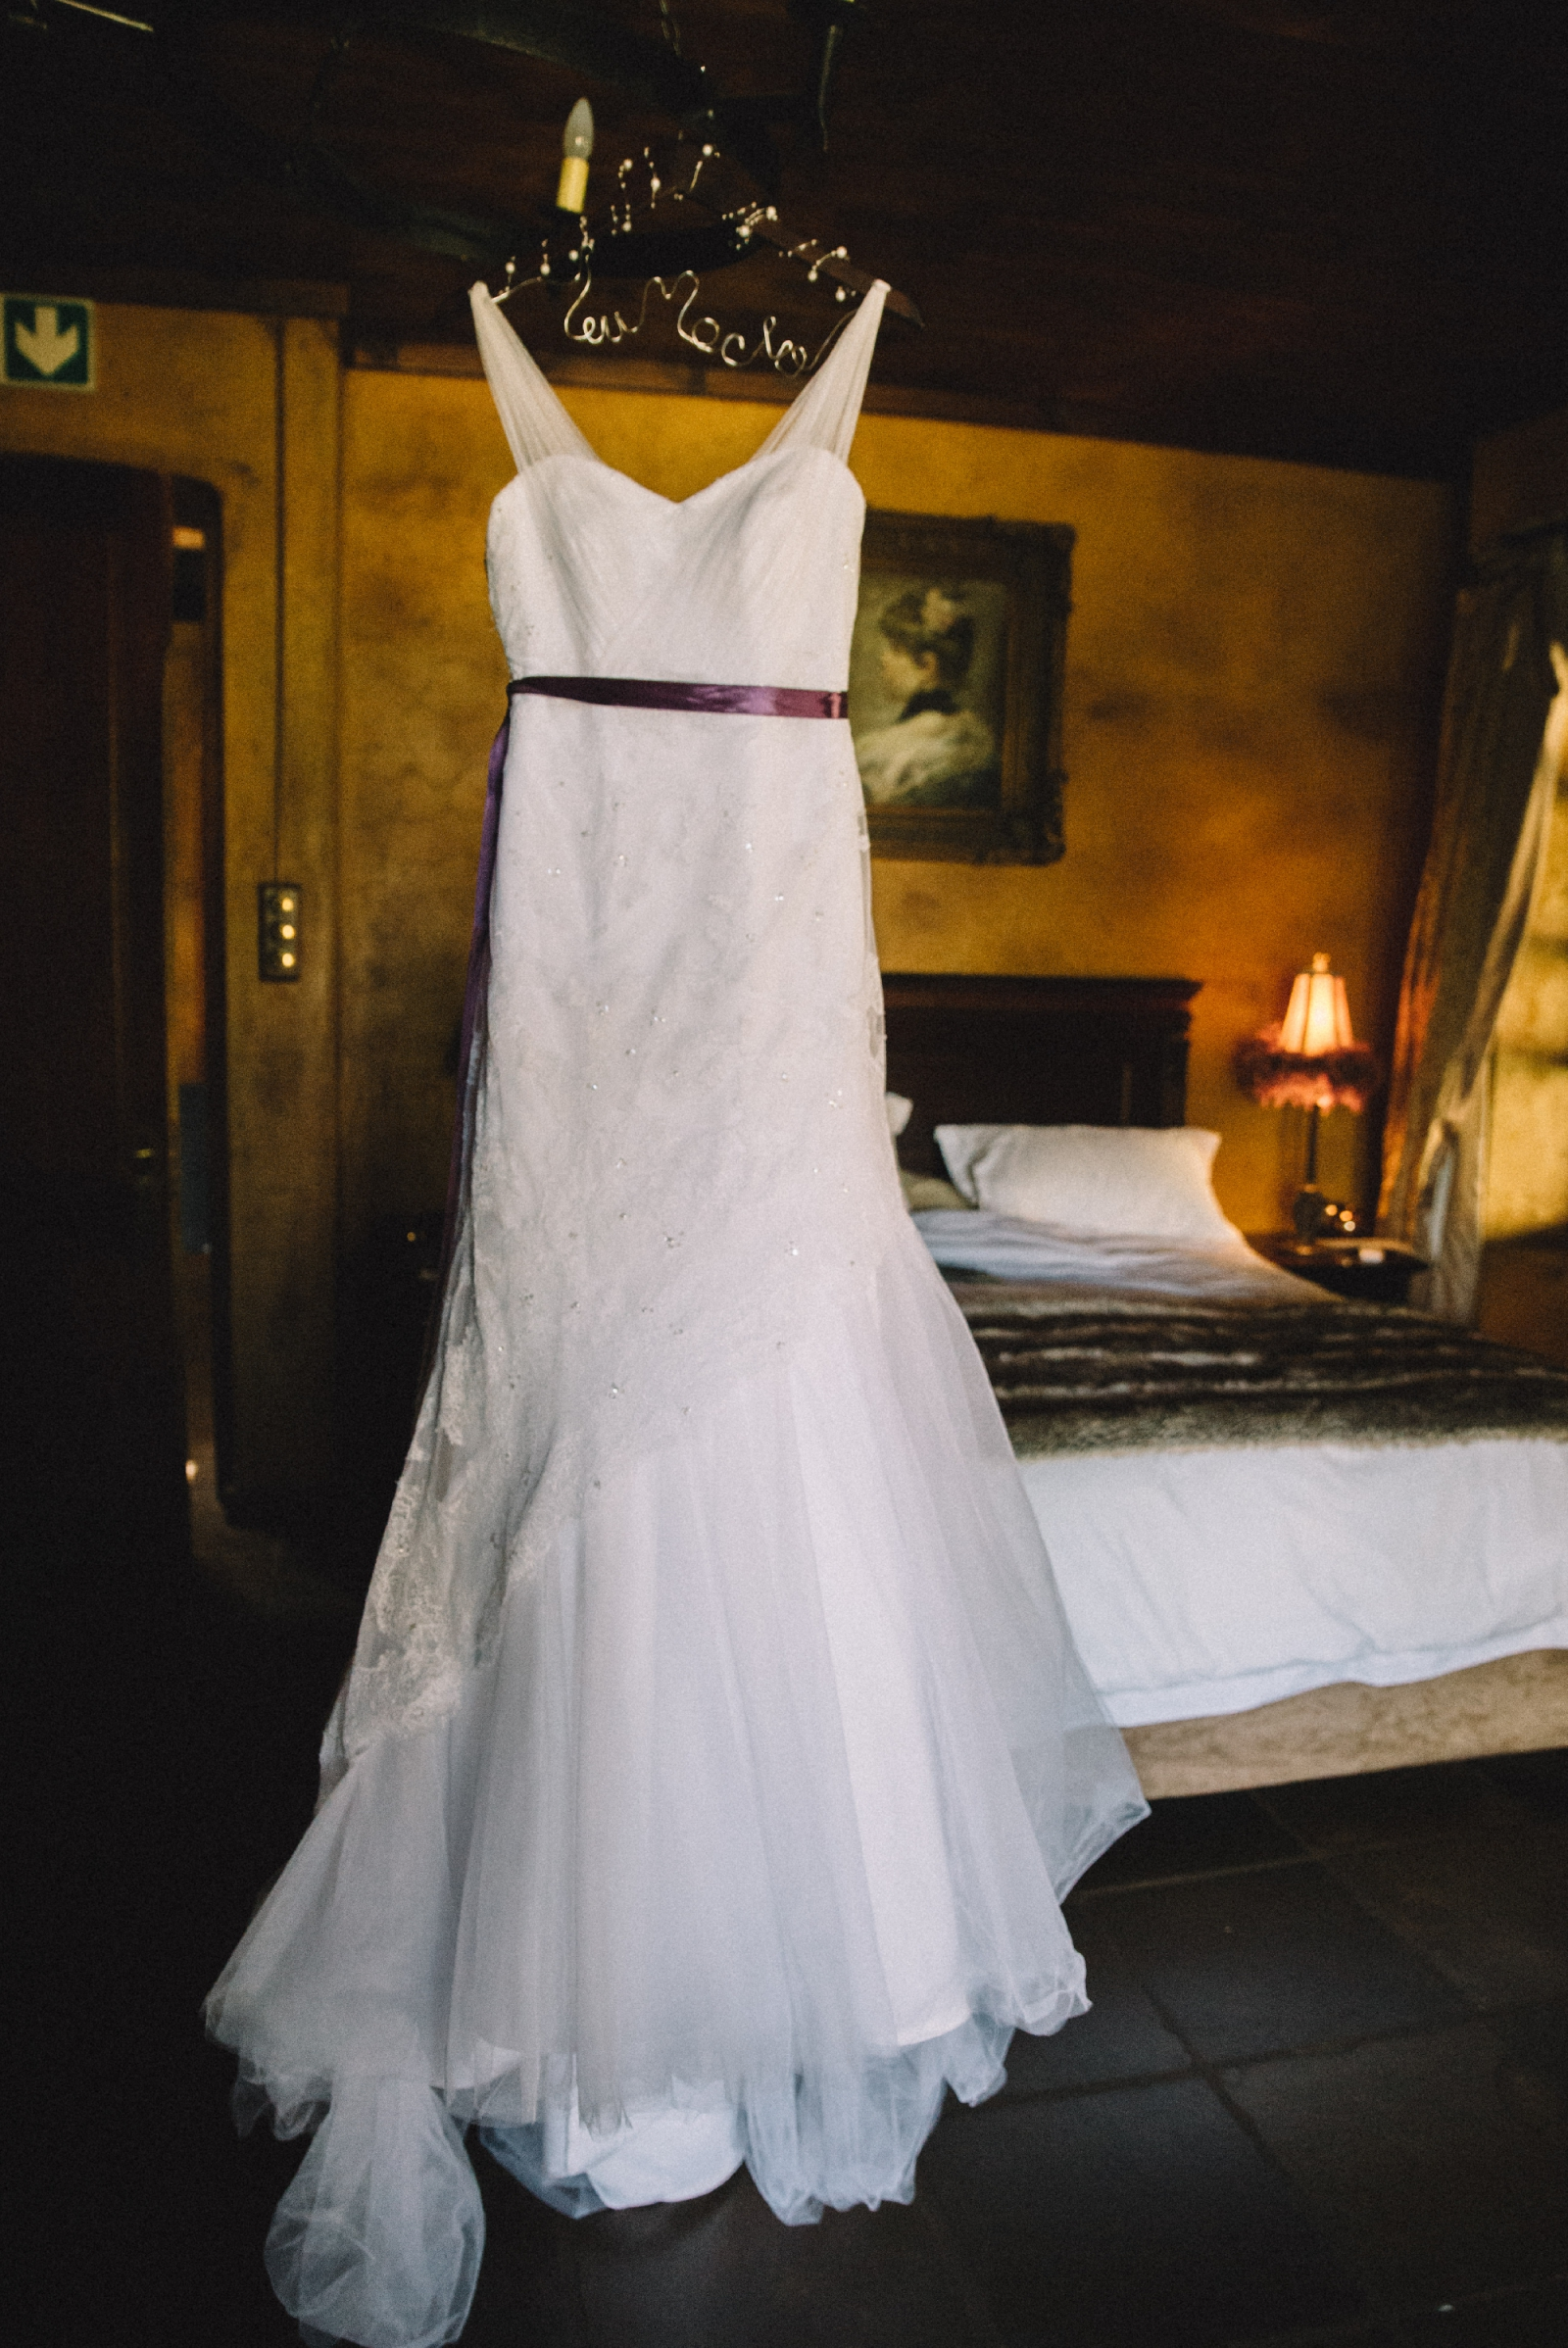 Bridal Gowns Vanderbijlpark : Bride co mjb wedding dress on sale off